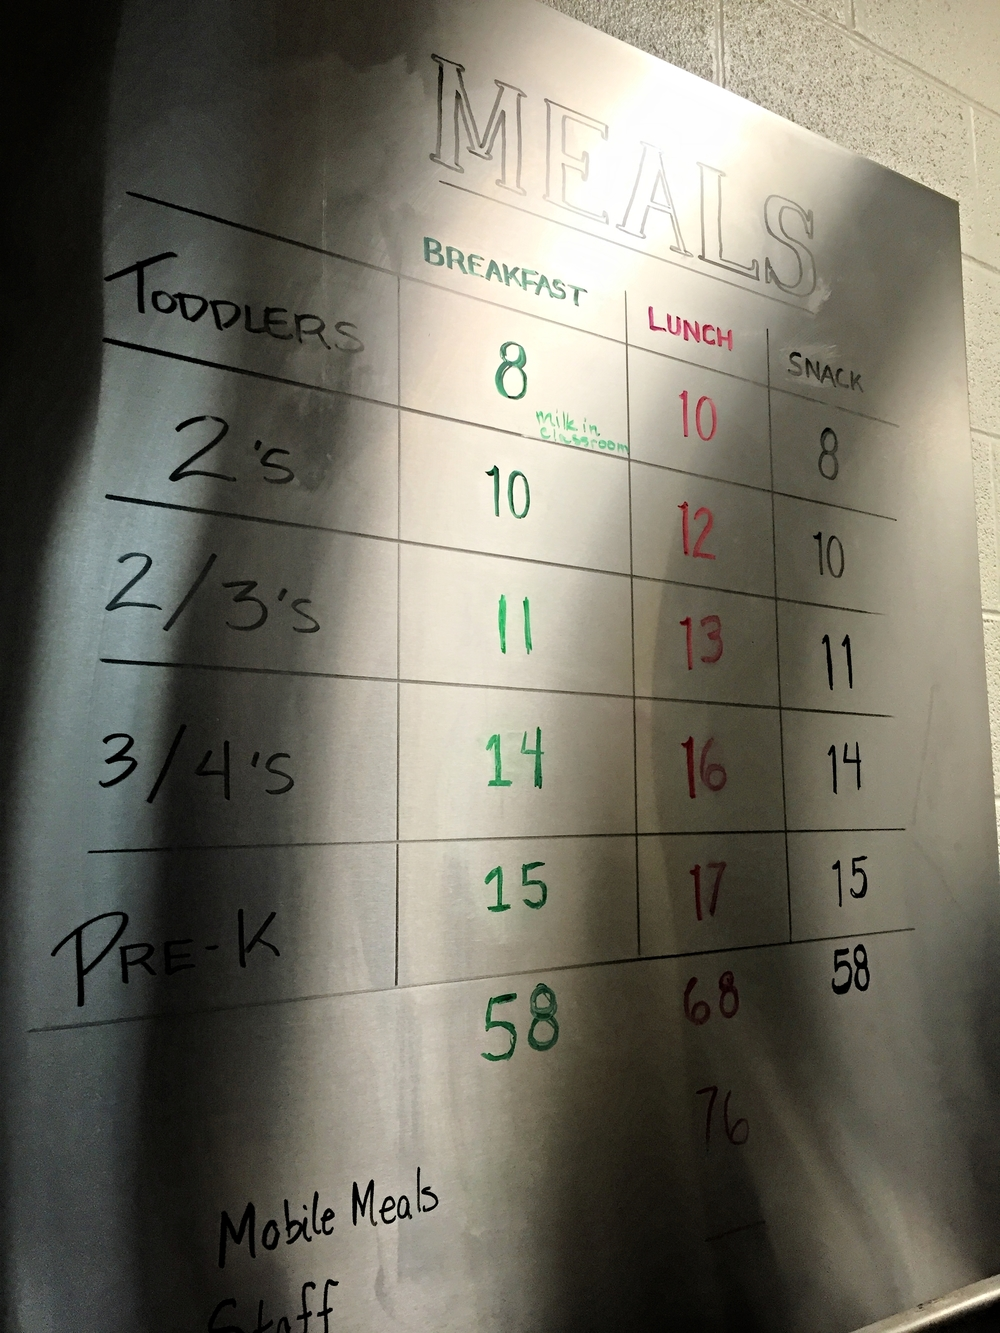 Here are our meal counts for all of our St. Luke's meals.